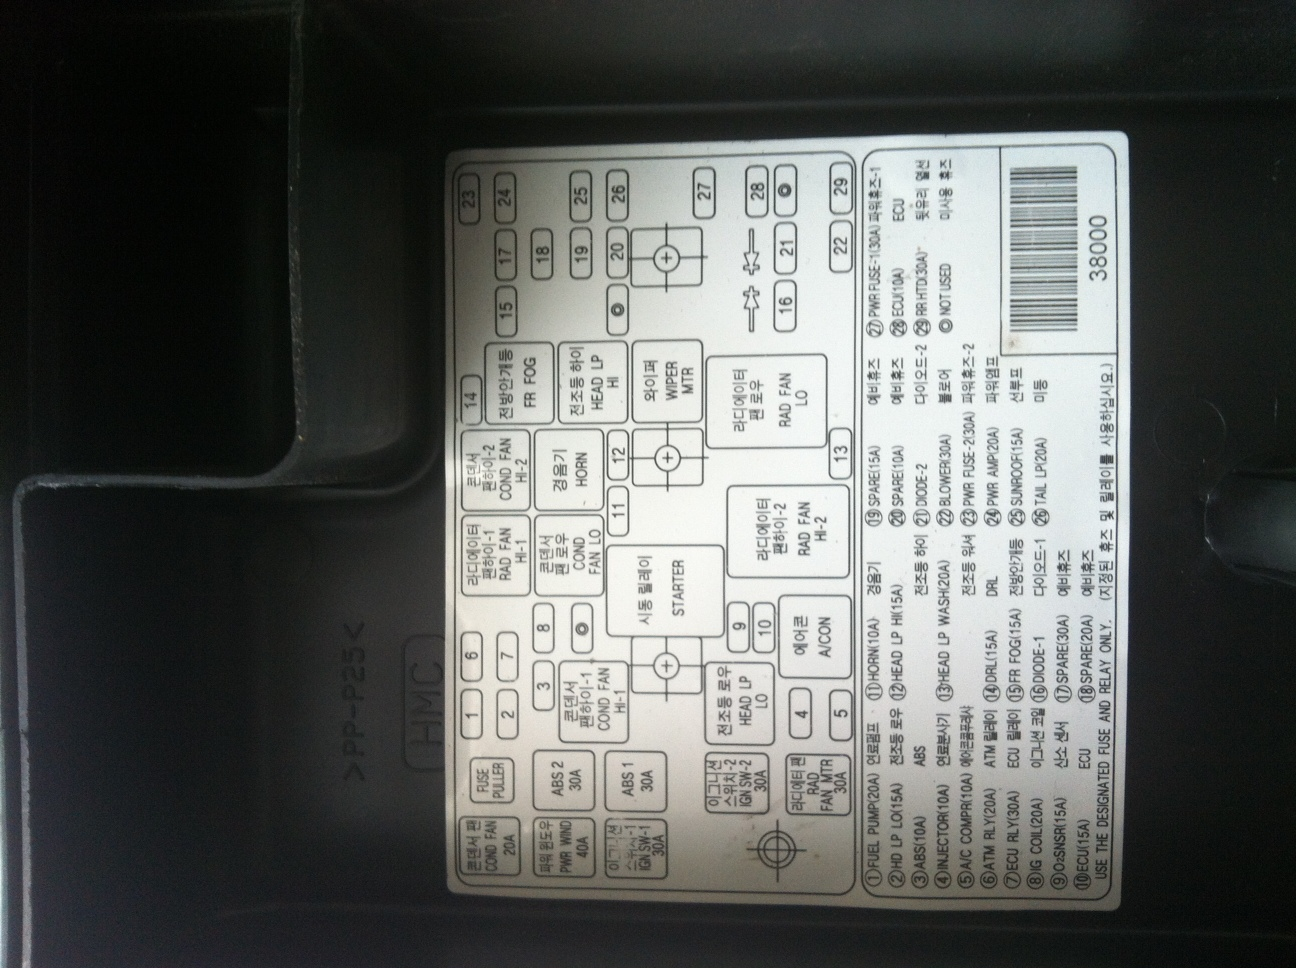 original c?garette lighter & power outlet don't work 2001 hyundai sonata fuse box at mifinder.co